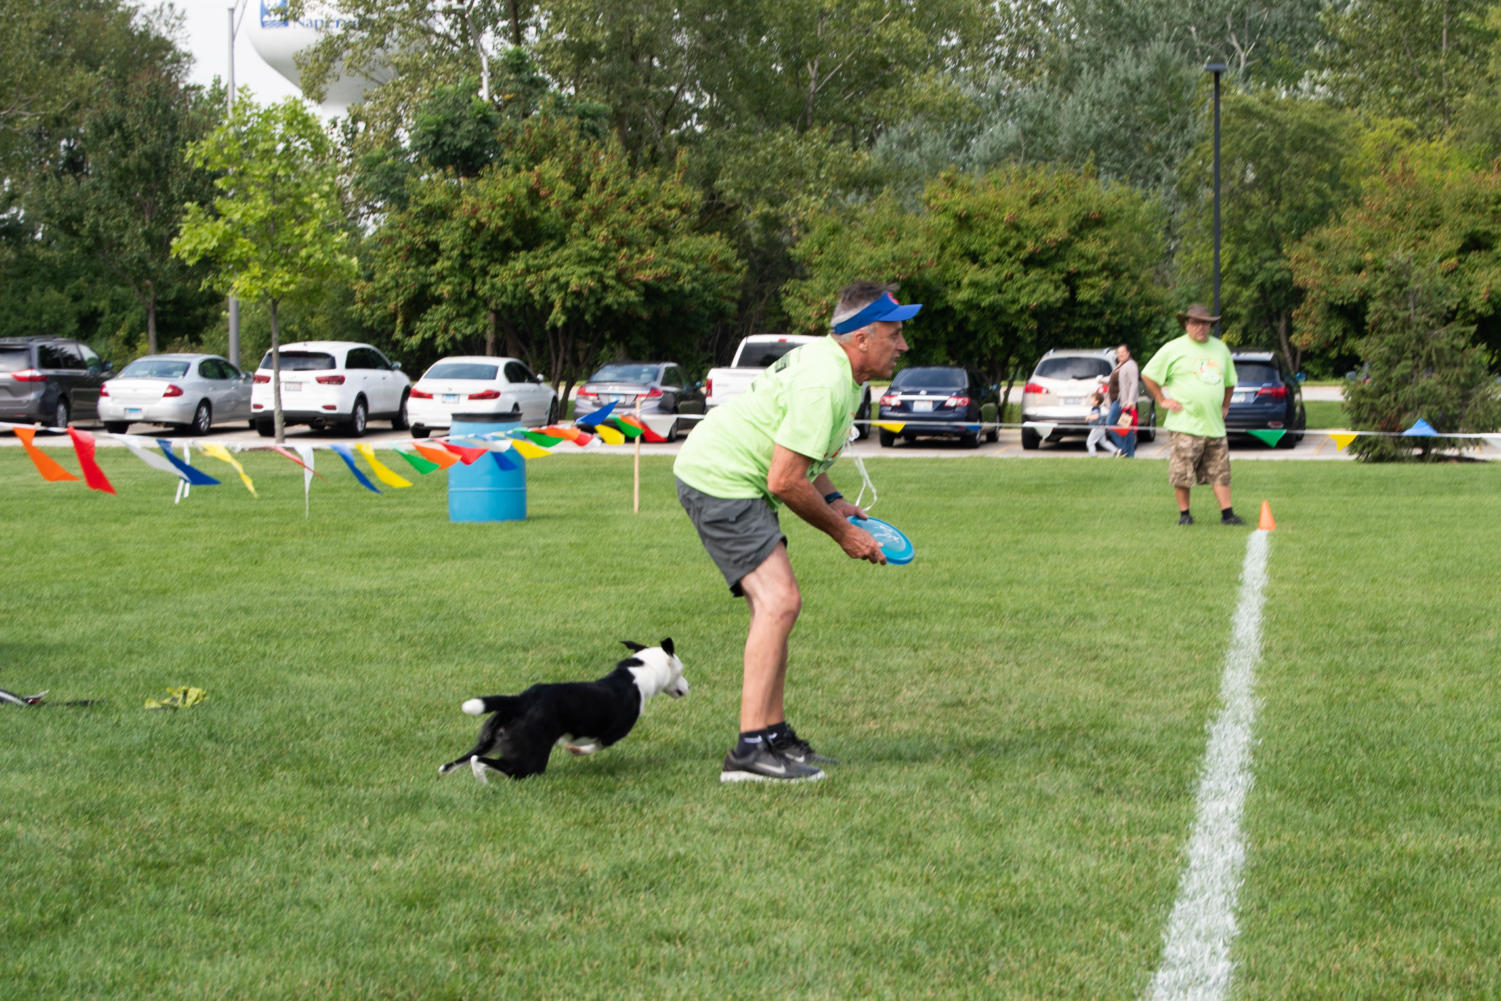 %0ARobert+prepares+to+throw+a+frisbee+to+his+dog+Laila+during+the+catch+and+throw+competition.+